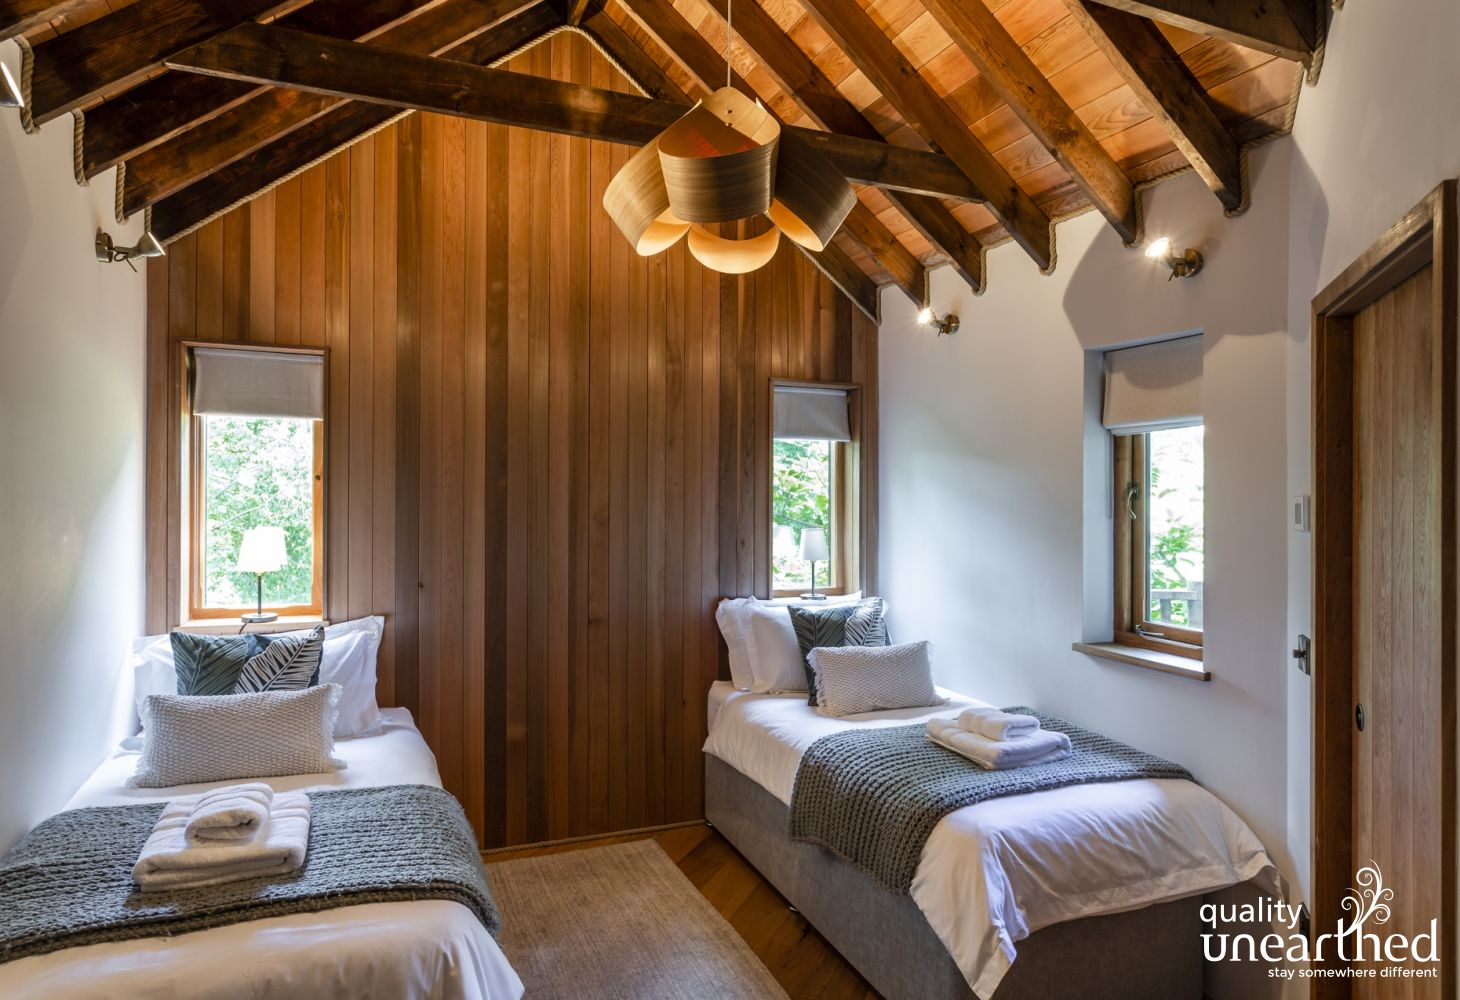 The treehouse twin bedroom, great for kids under the open wooden beams with cedar decorative planks and windows looking across the Sussex woods